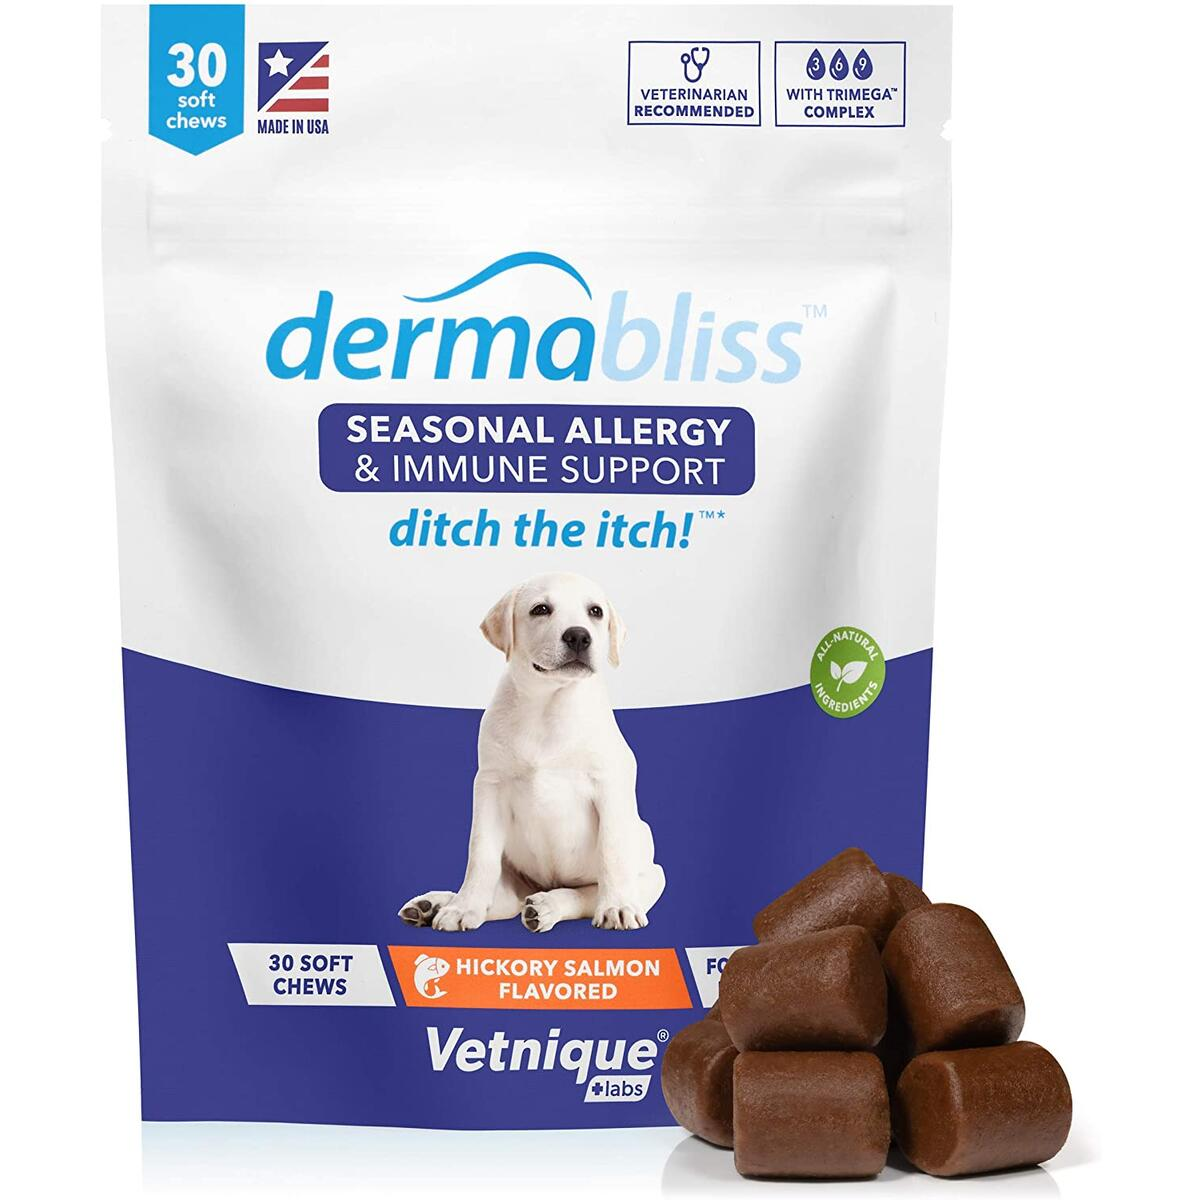 Dermabliss Seasonal Allergy & Immune Support for Dogs with Omega 3-6-9, Probiotics, Enzymes, Fish Oil and Colostrum Powder - Hickory Salmon Flavored Dog Treats